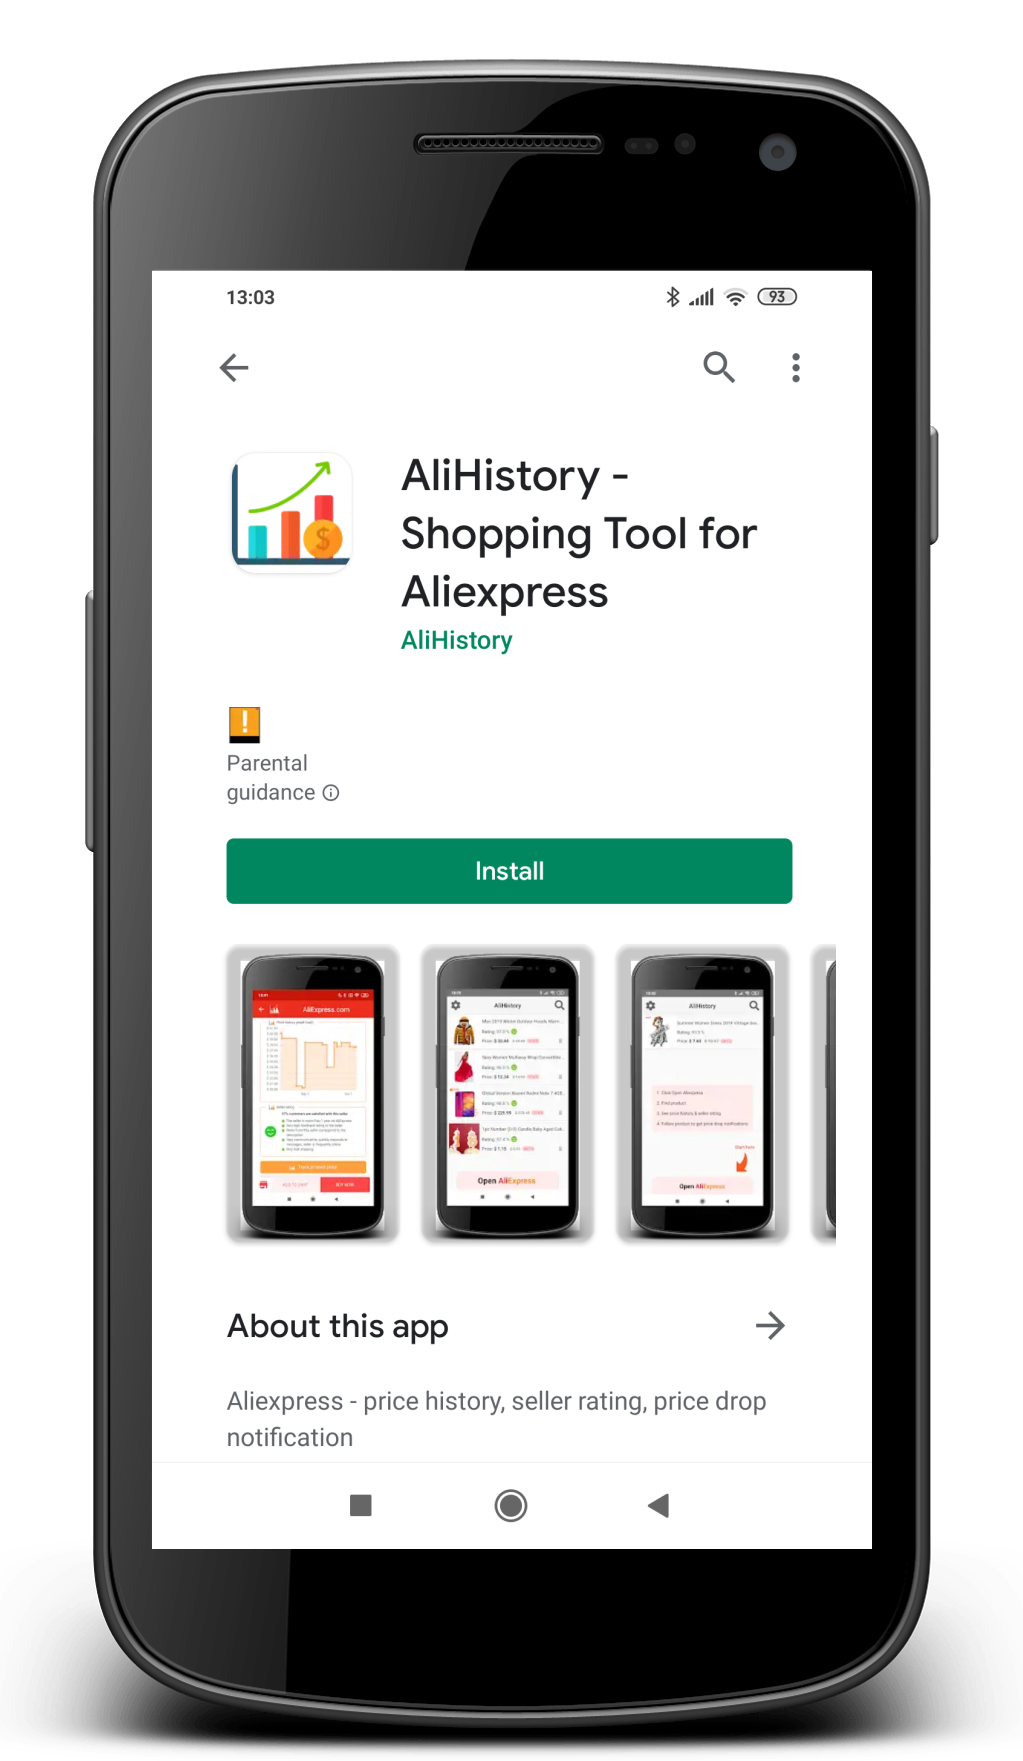 Aliexpress AliHistory google play store app shopping